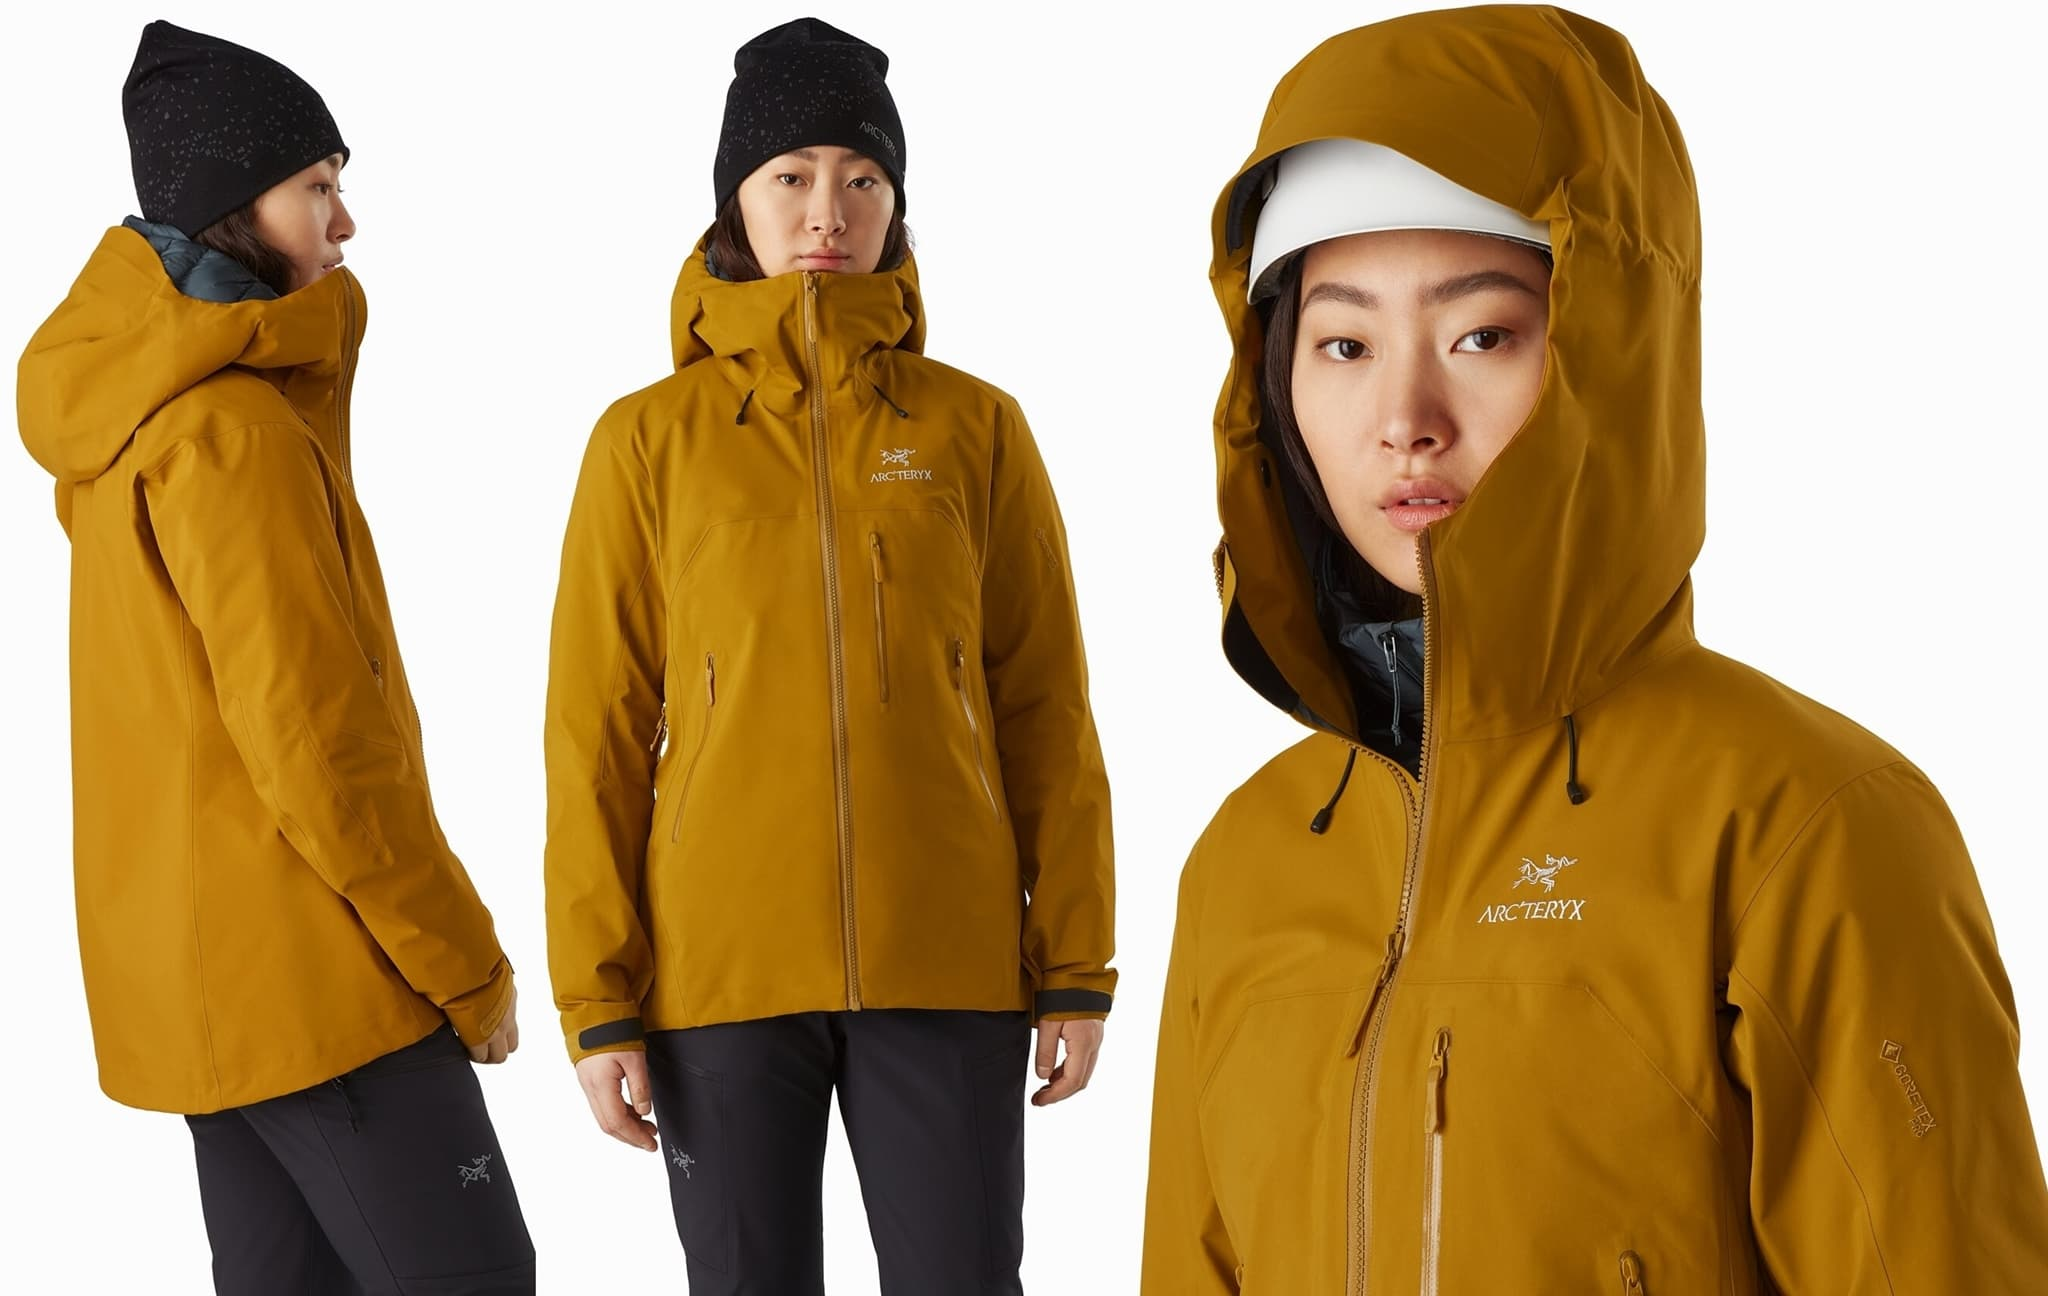 Durable, highly versatile GORE-TEX PRO jacket for severe alpine conditions